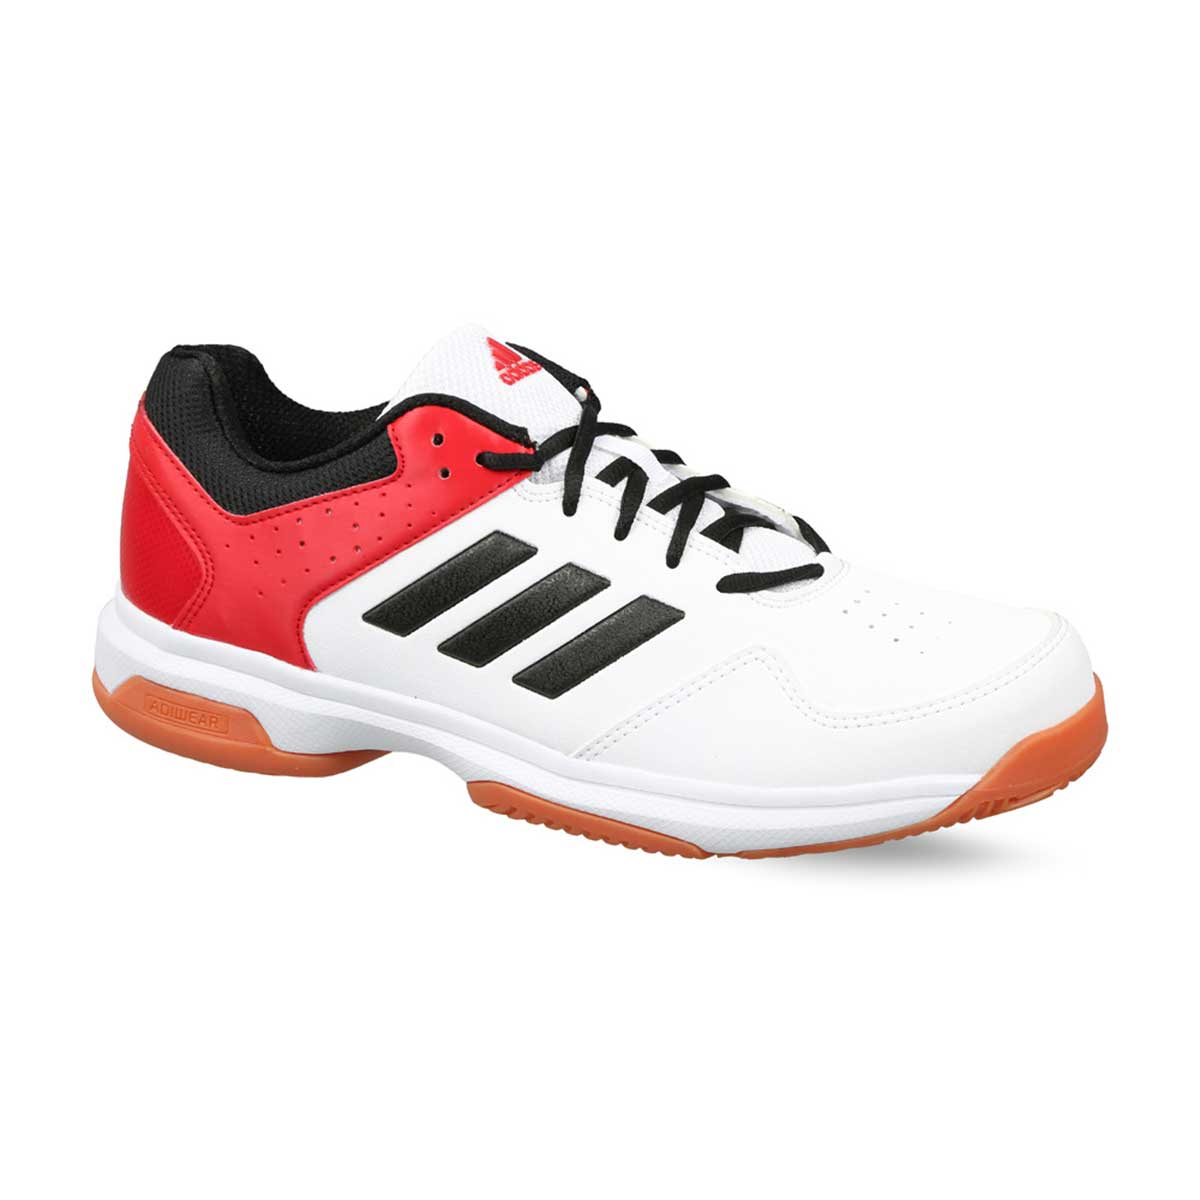 best service 51fc5 1aa25 Adidas Quick Force Indoor Badminton Shoes (White/Black/Red/Orange)